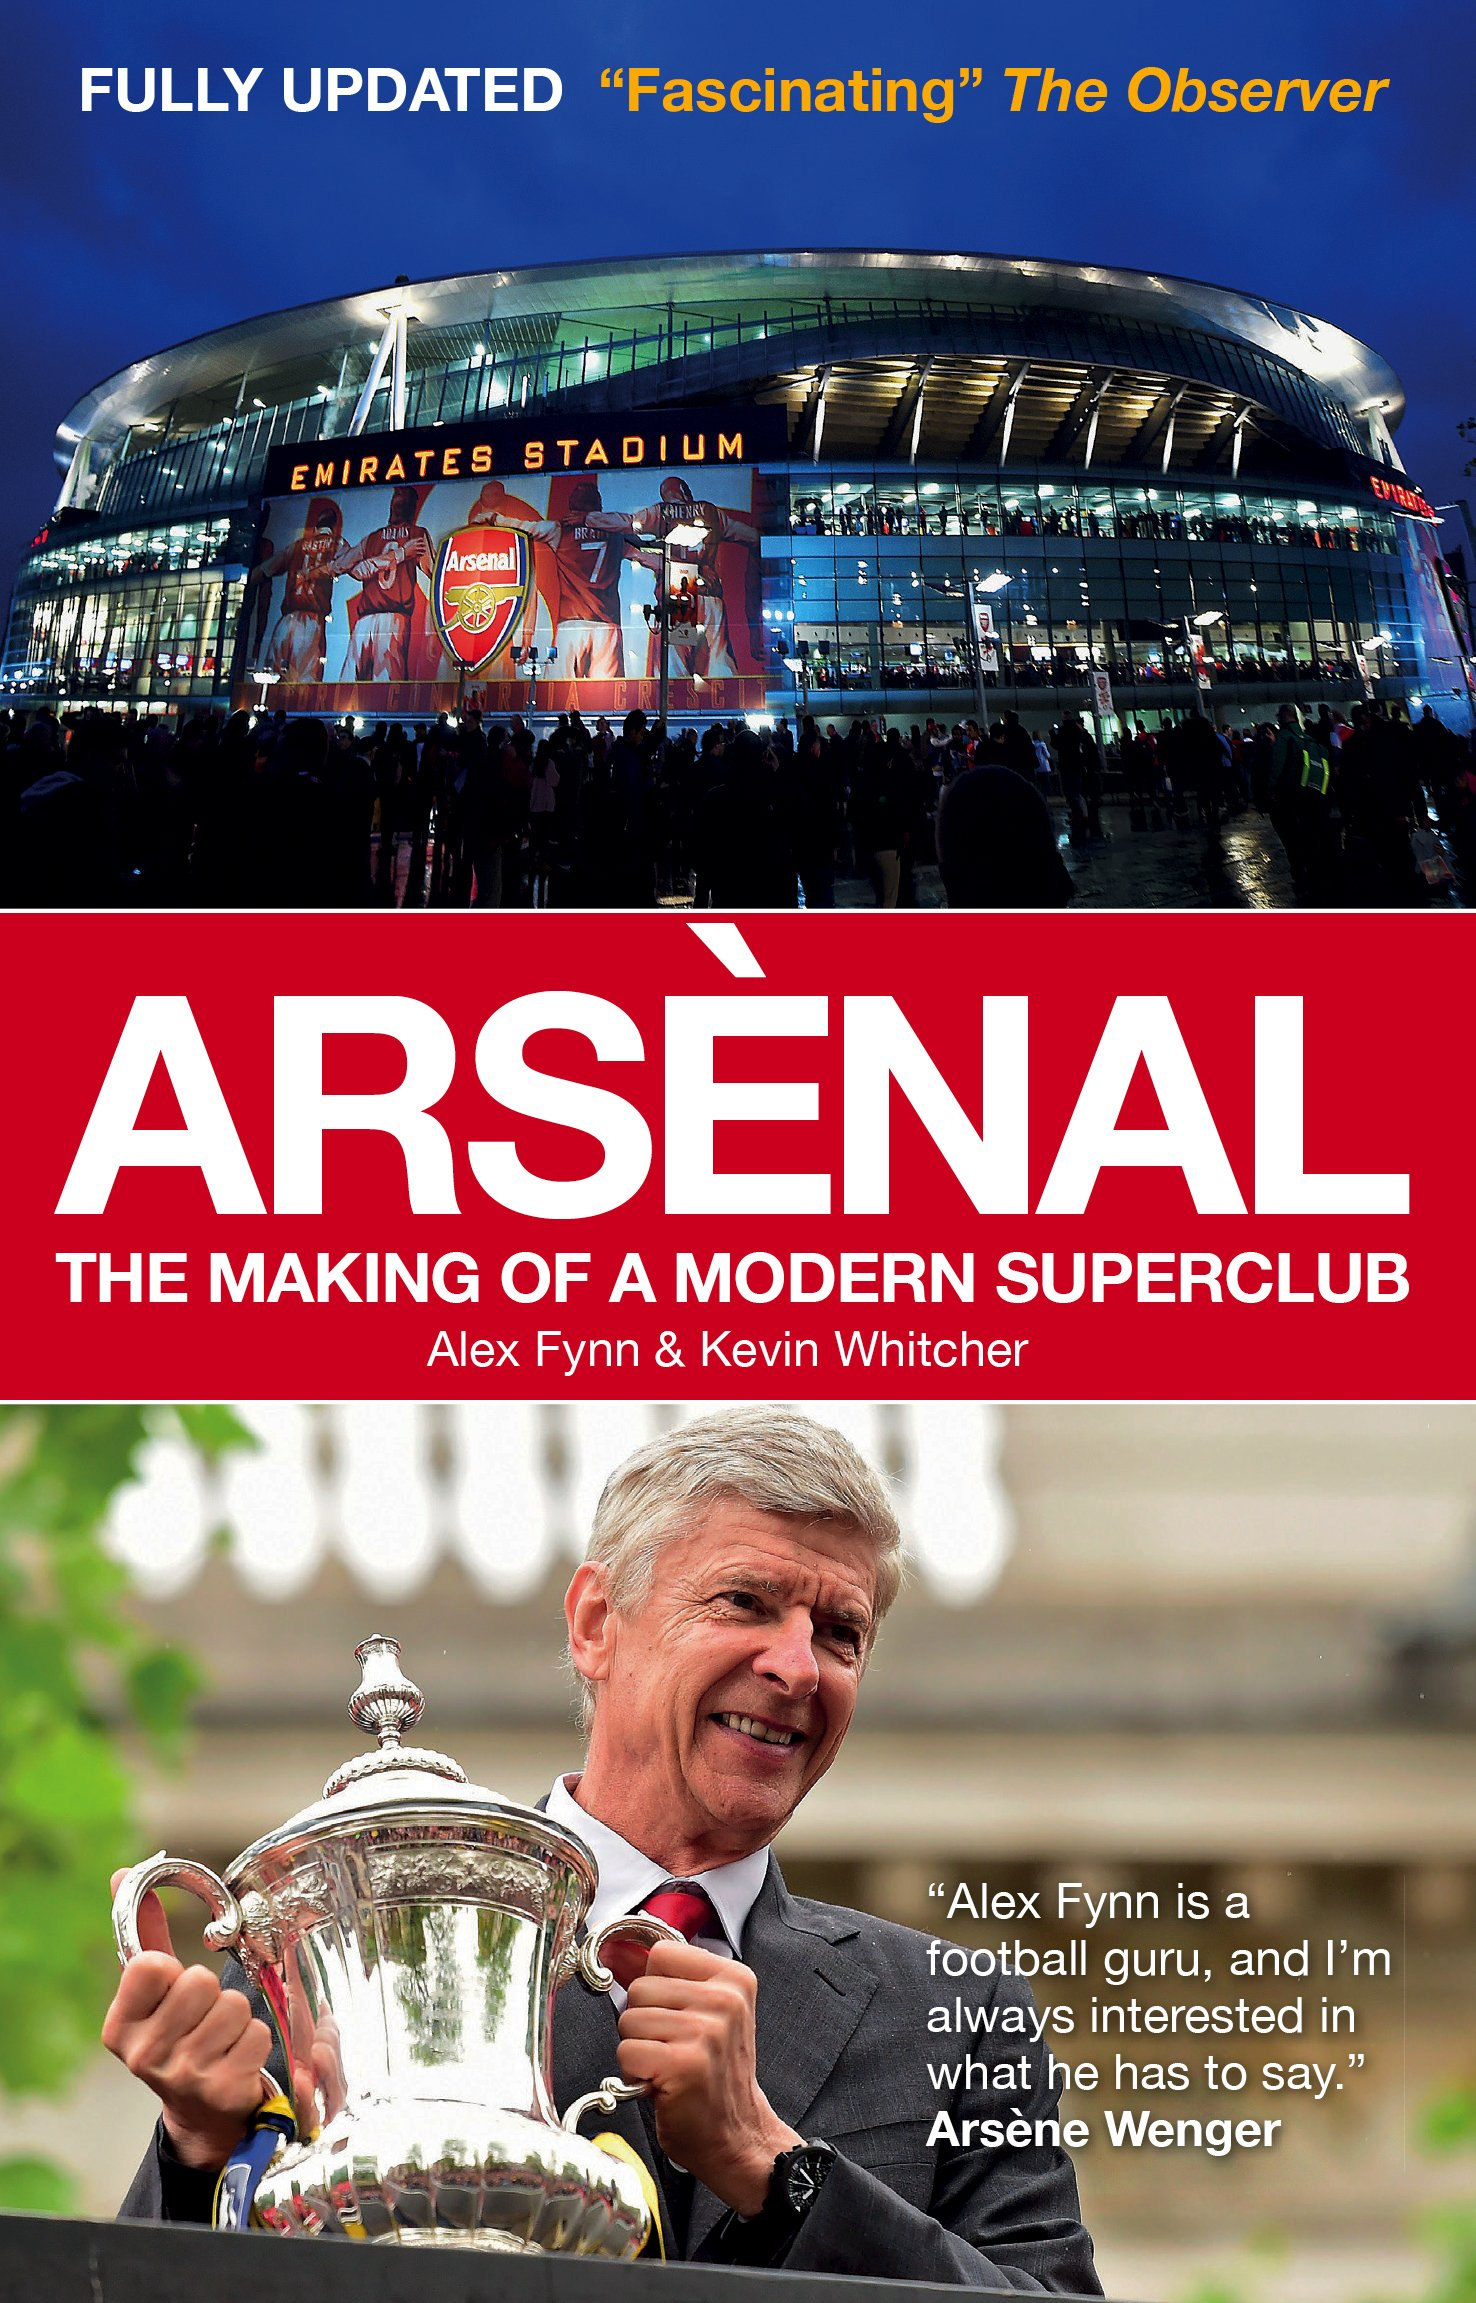 Image OfArsenal: The Making Of A Modern Superclub